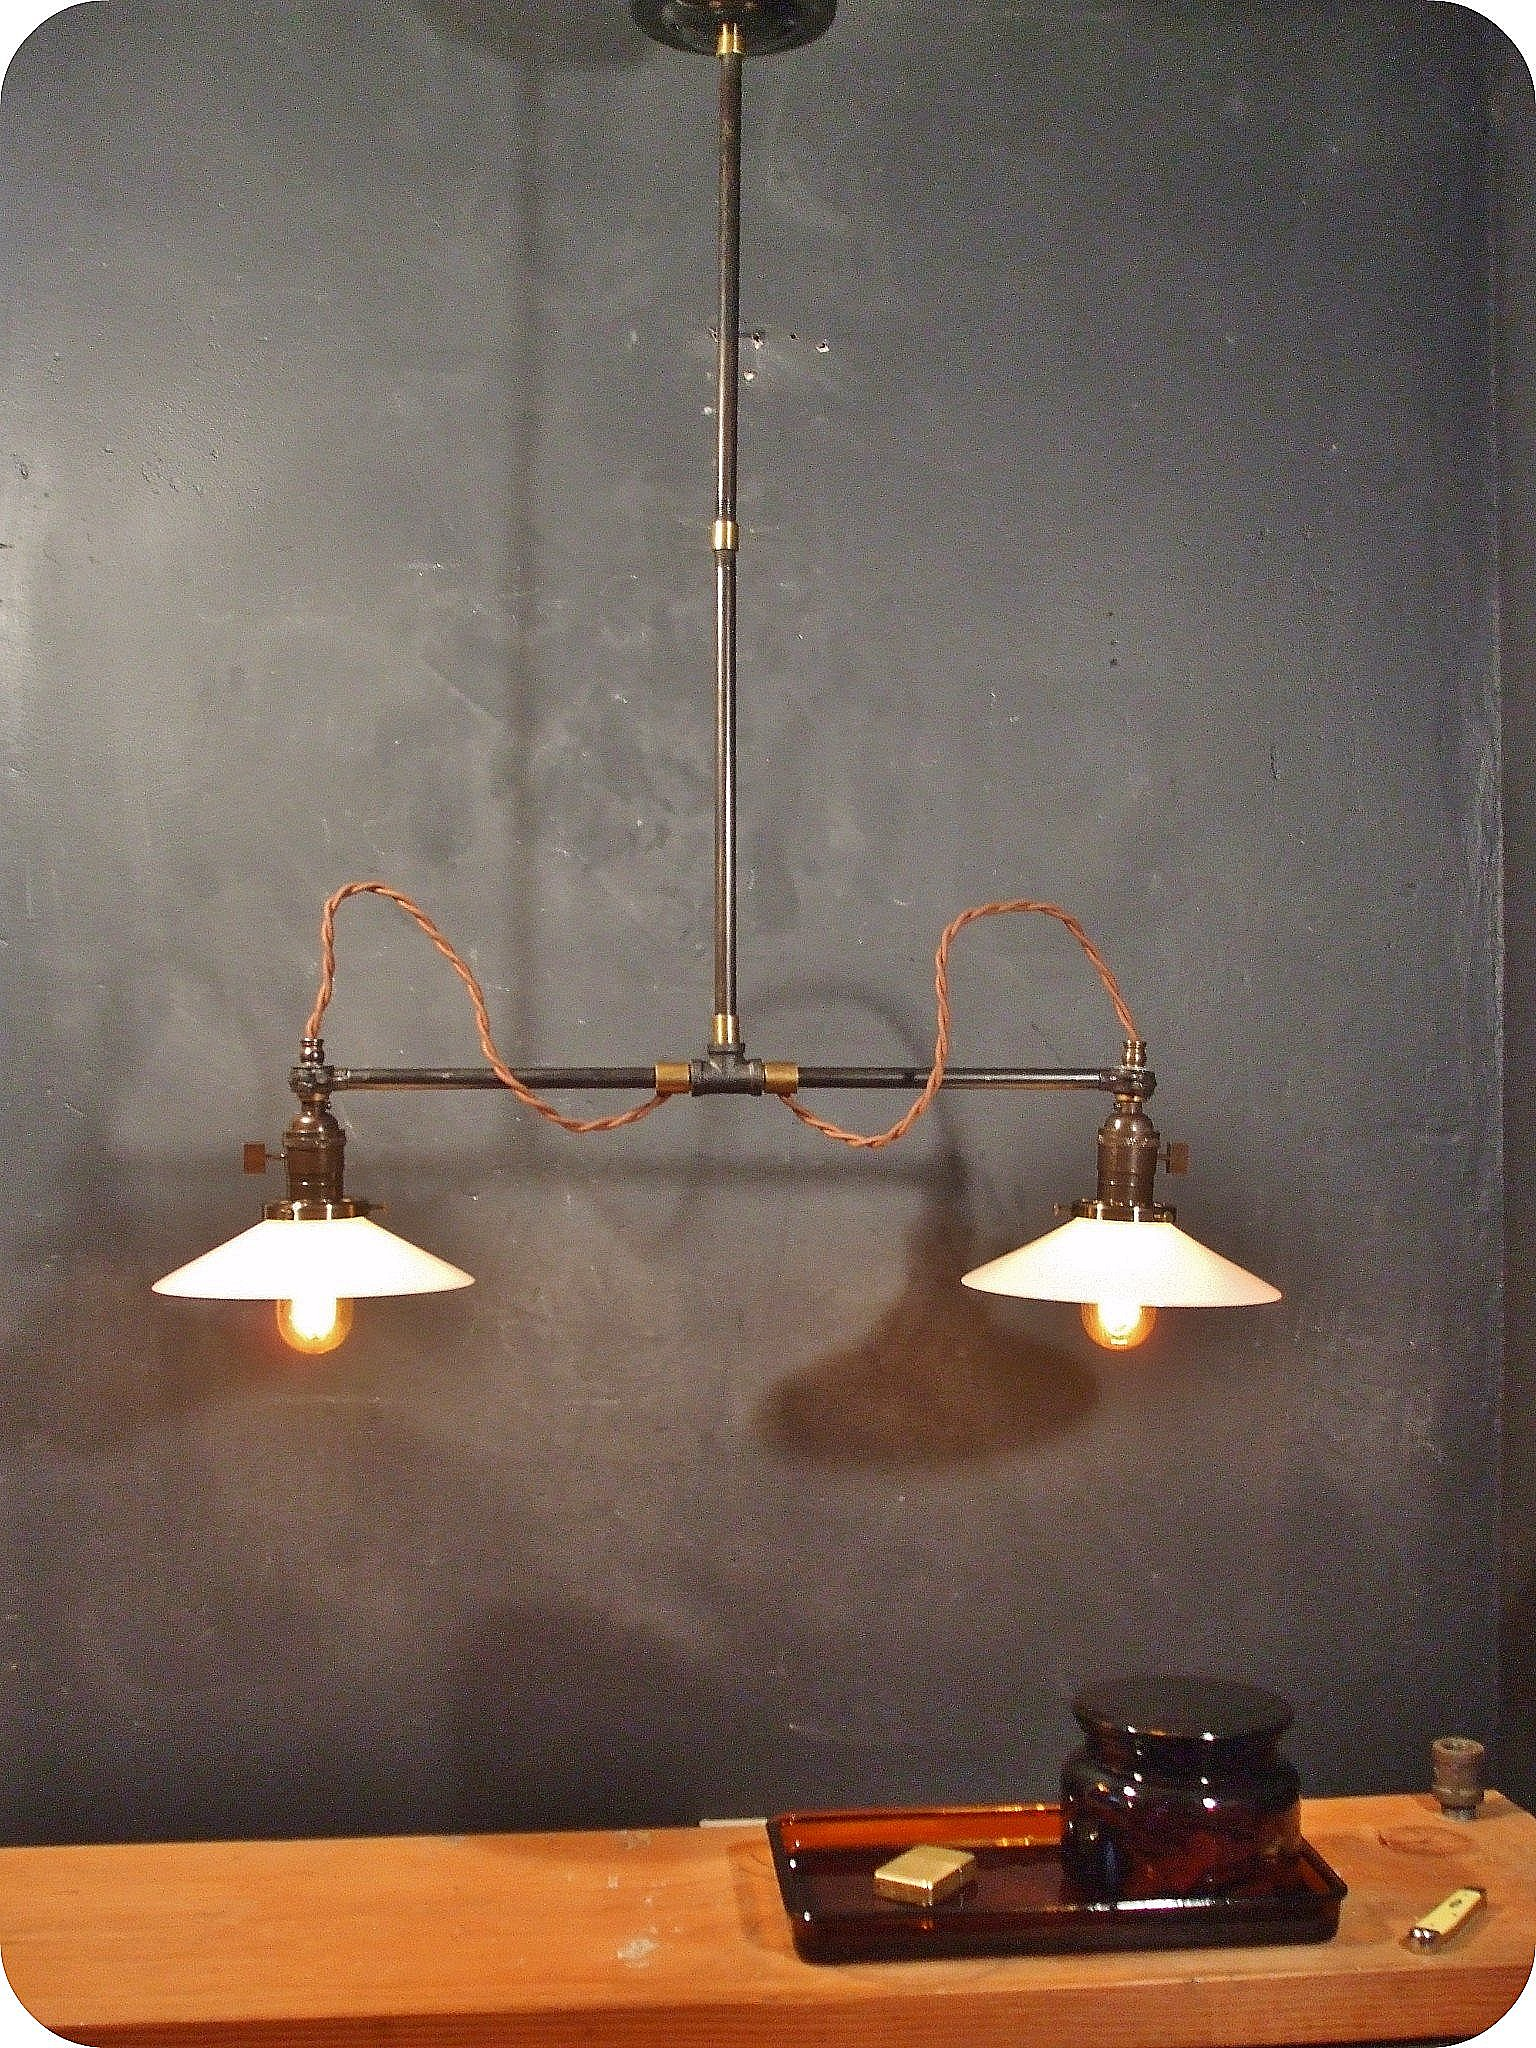 Vintage industrial double shade ceiling sconce machine age flat dscf2557small arubaitofo Gallery